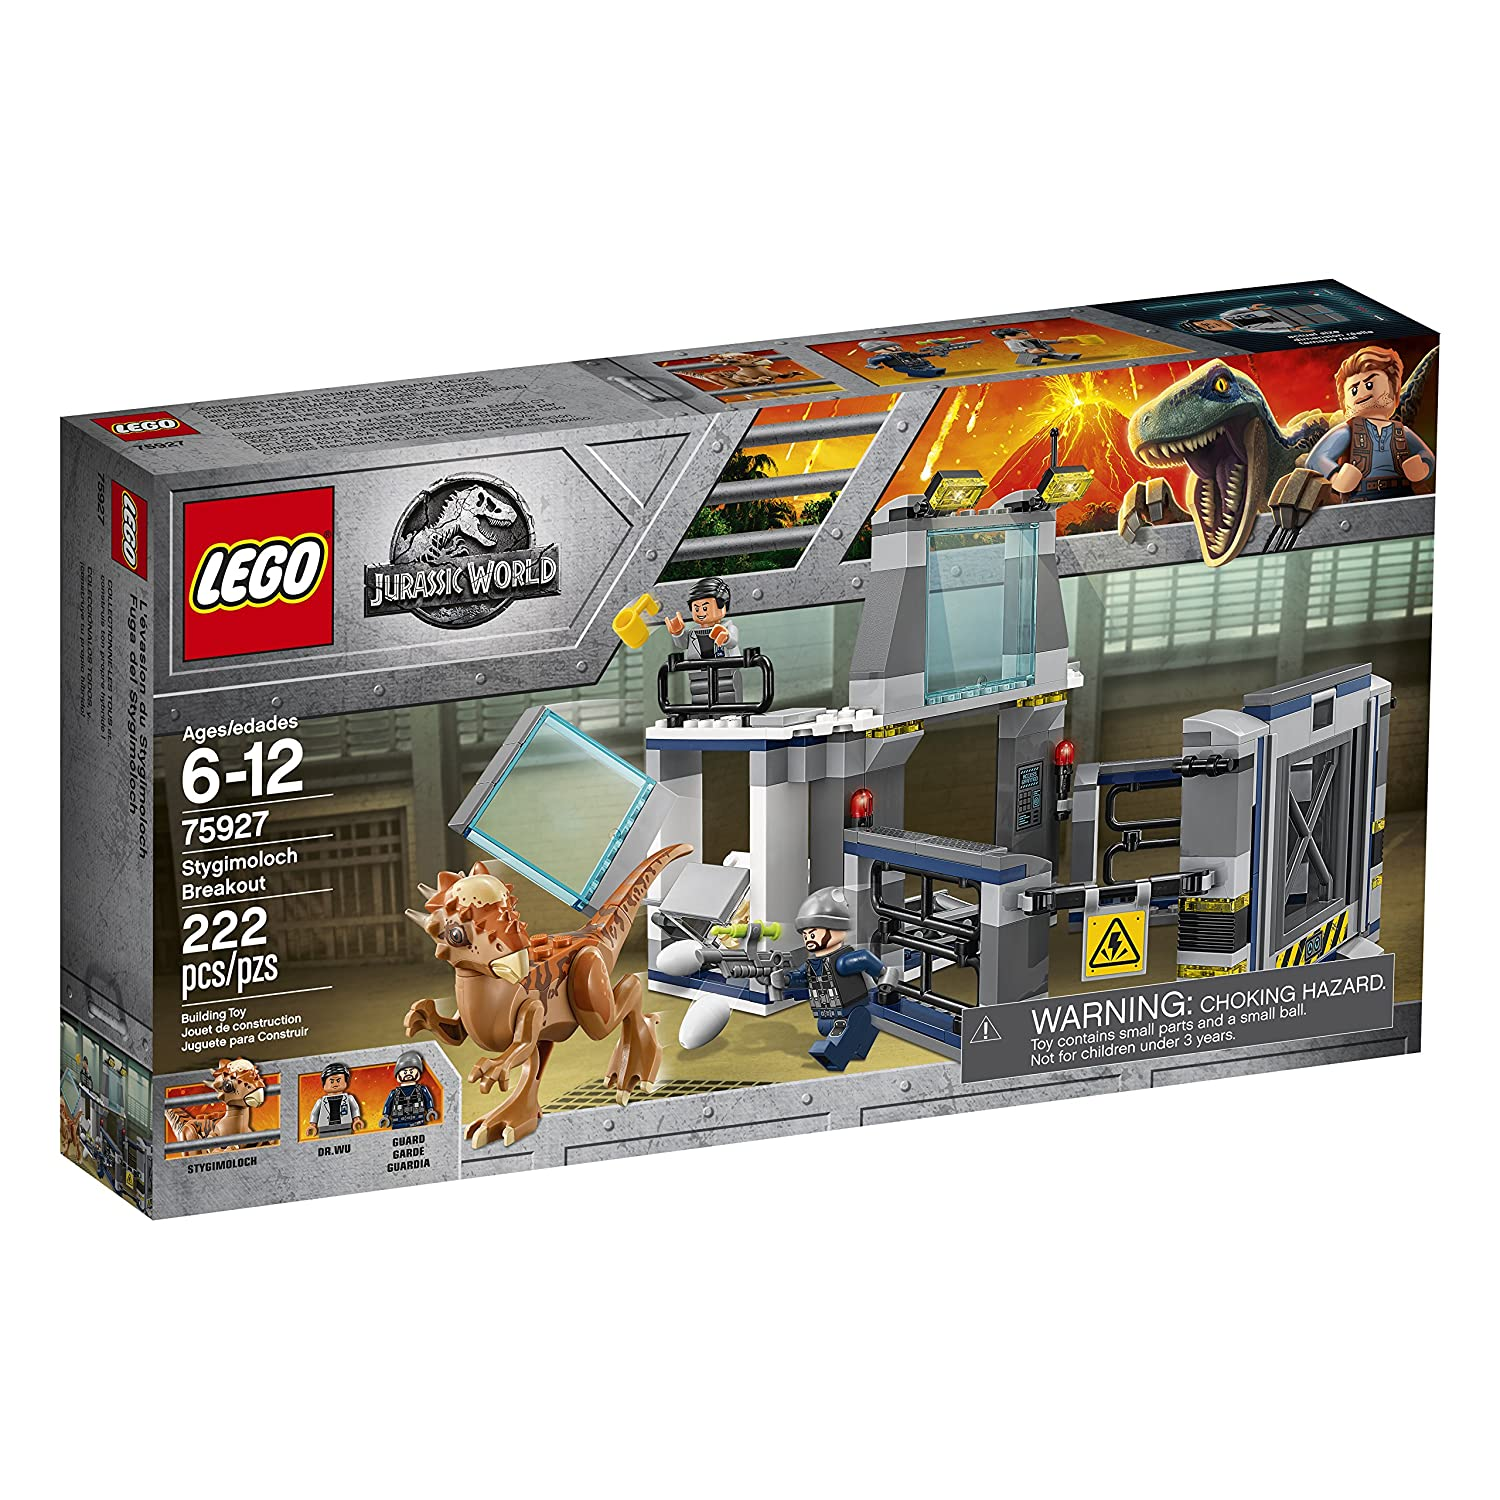 Top 9 Best Lego Jurassic Park Sets Reviews in 2020 9